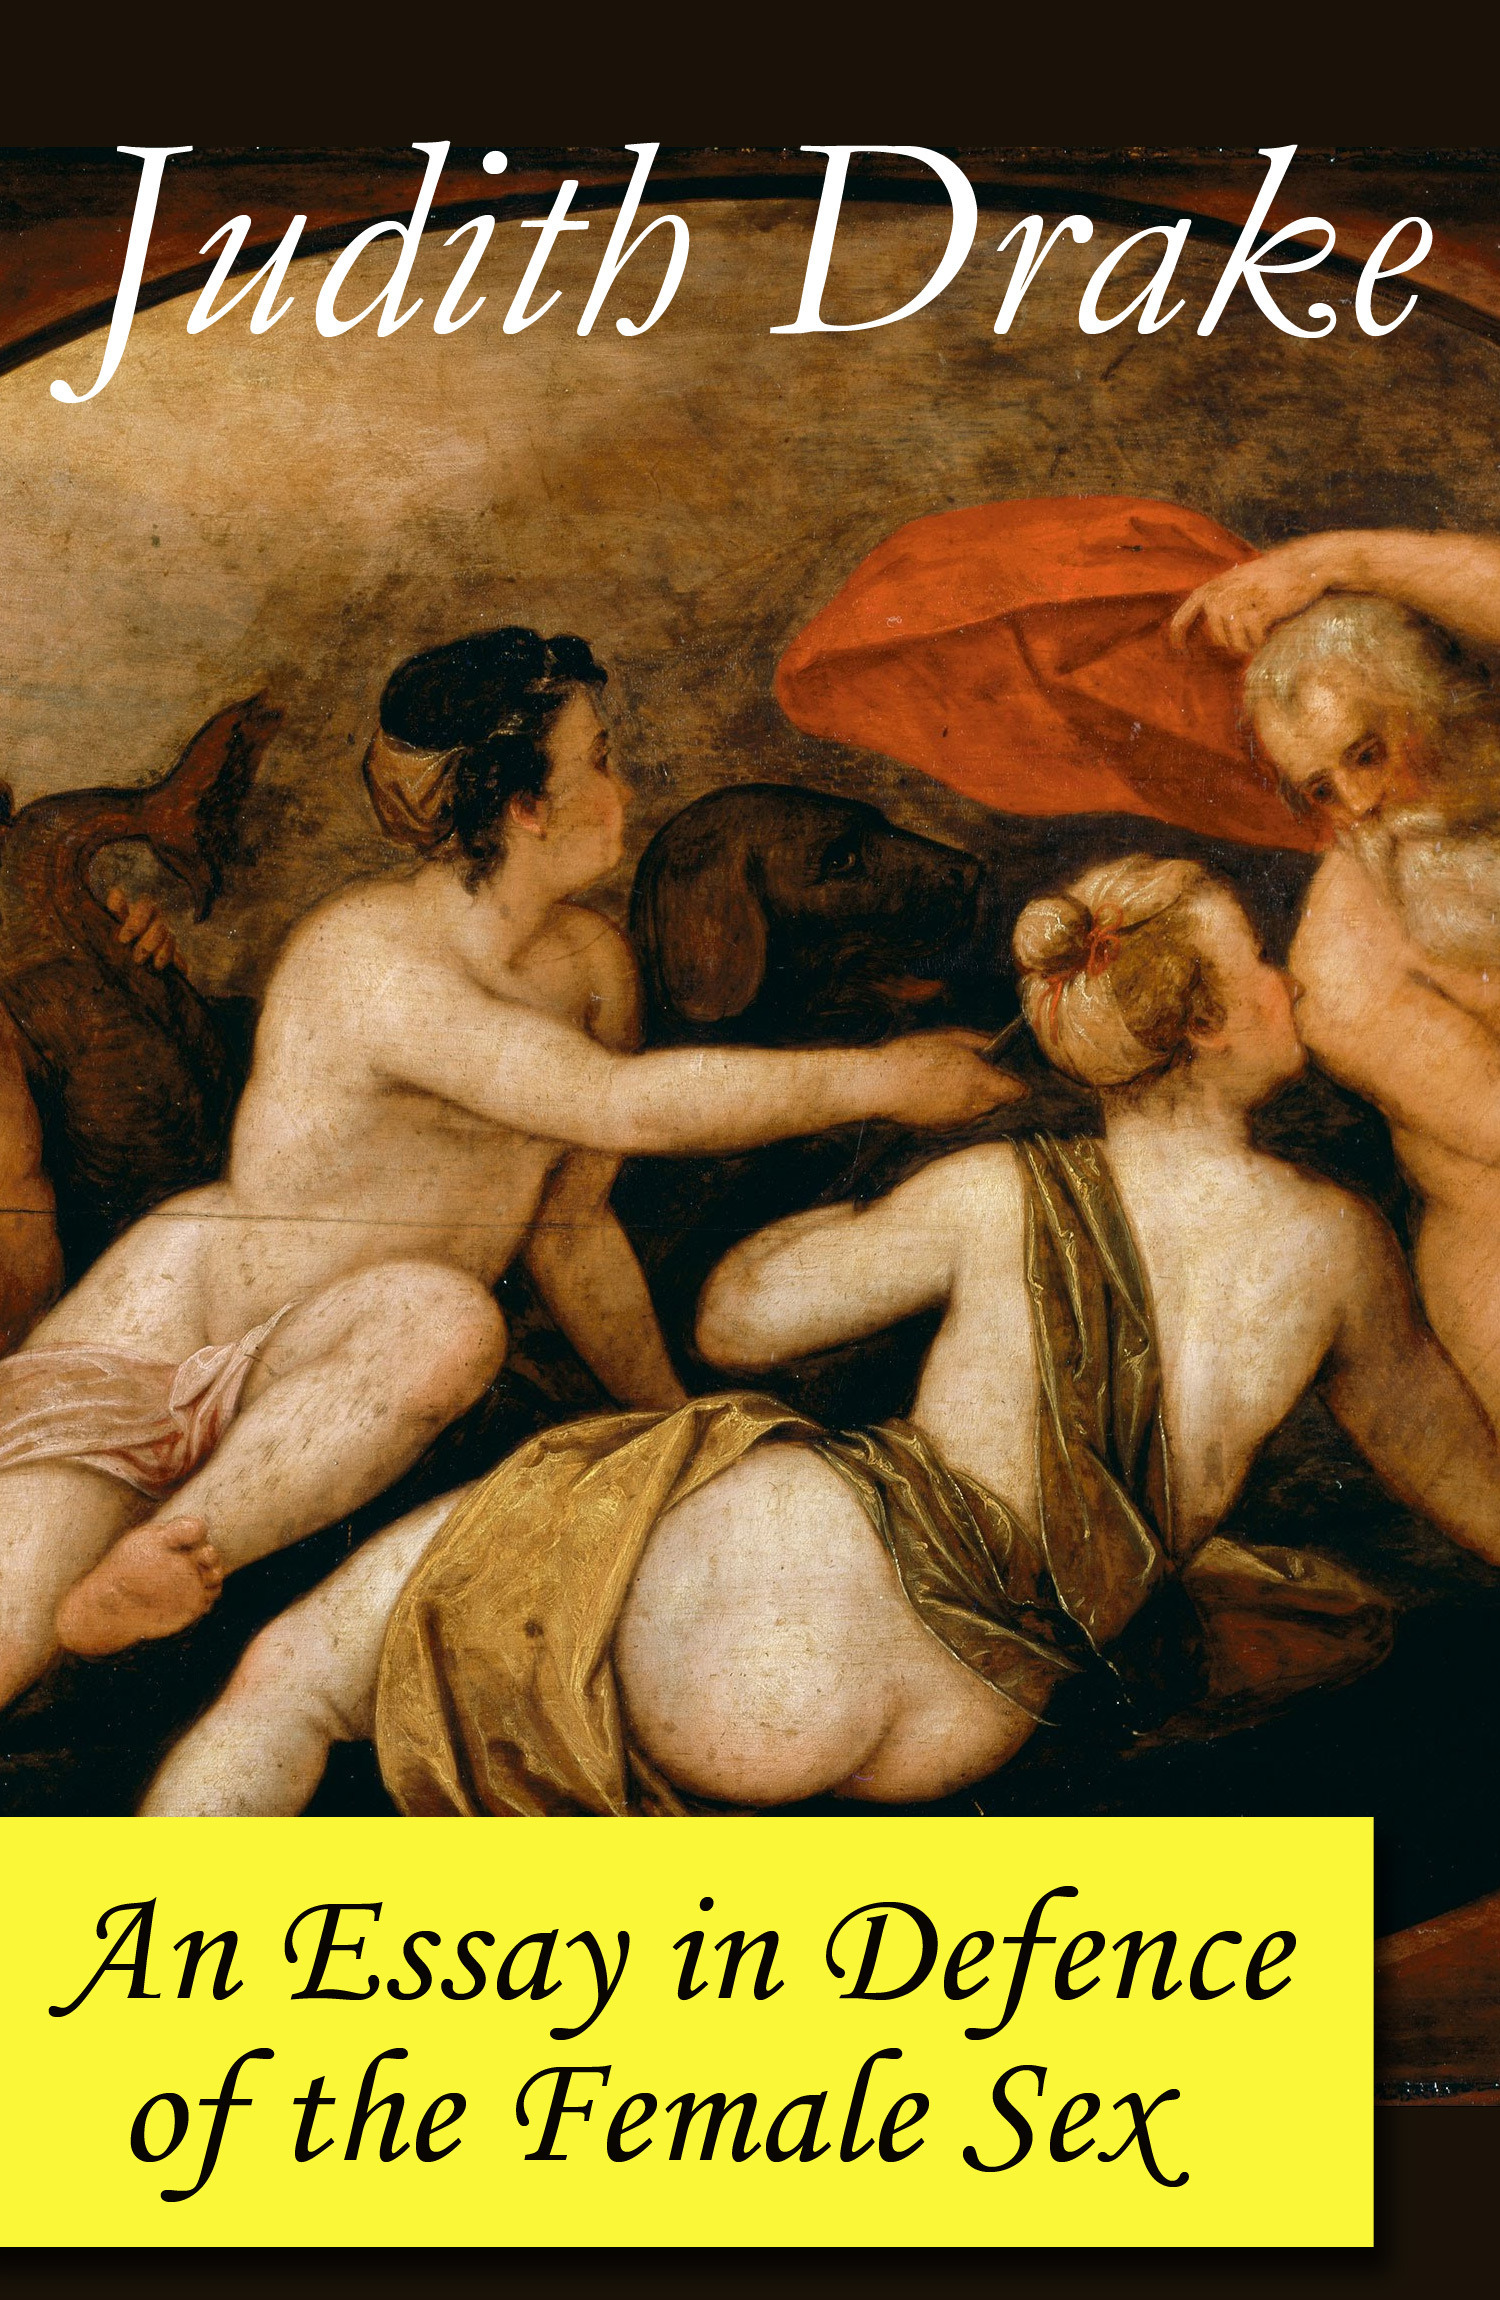 An Essay in Defence of the Female Sex (a feminist literature classic)